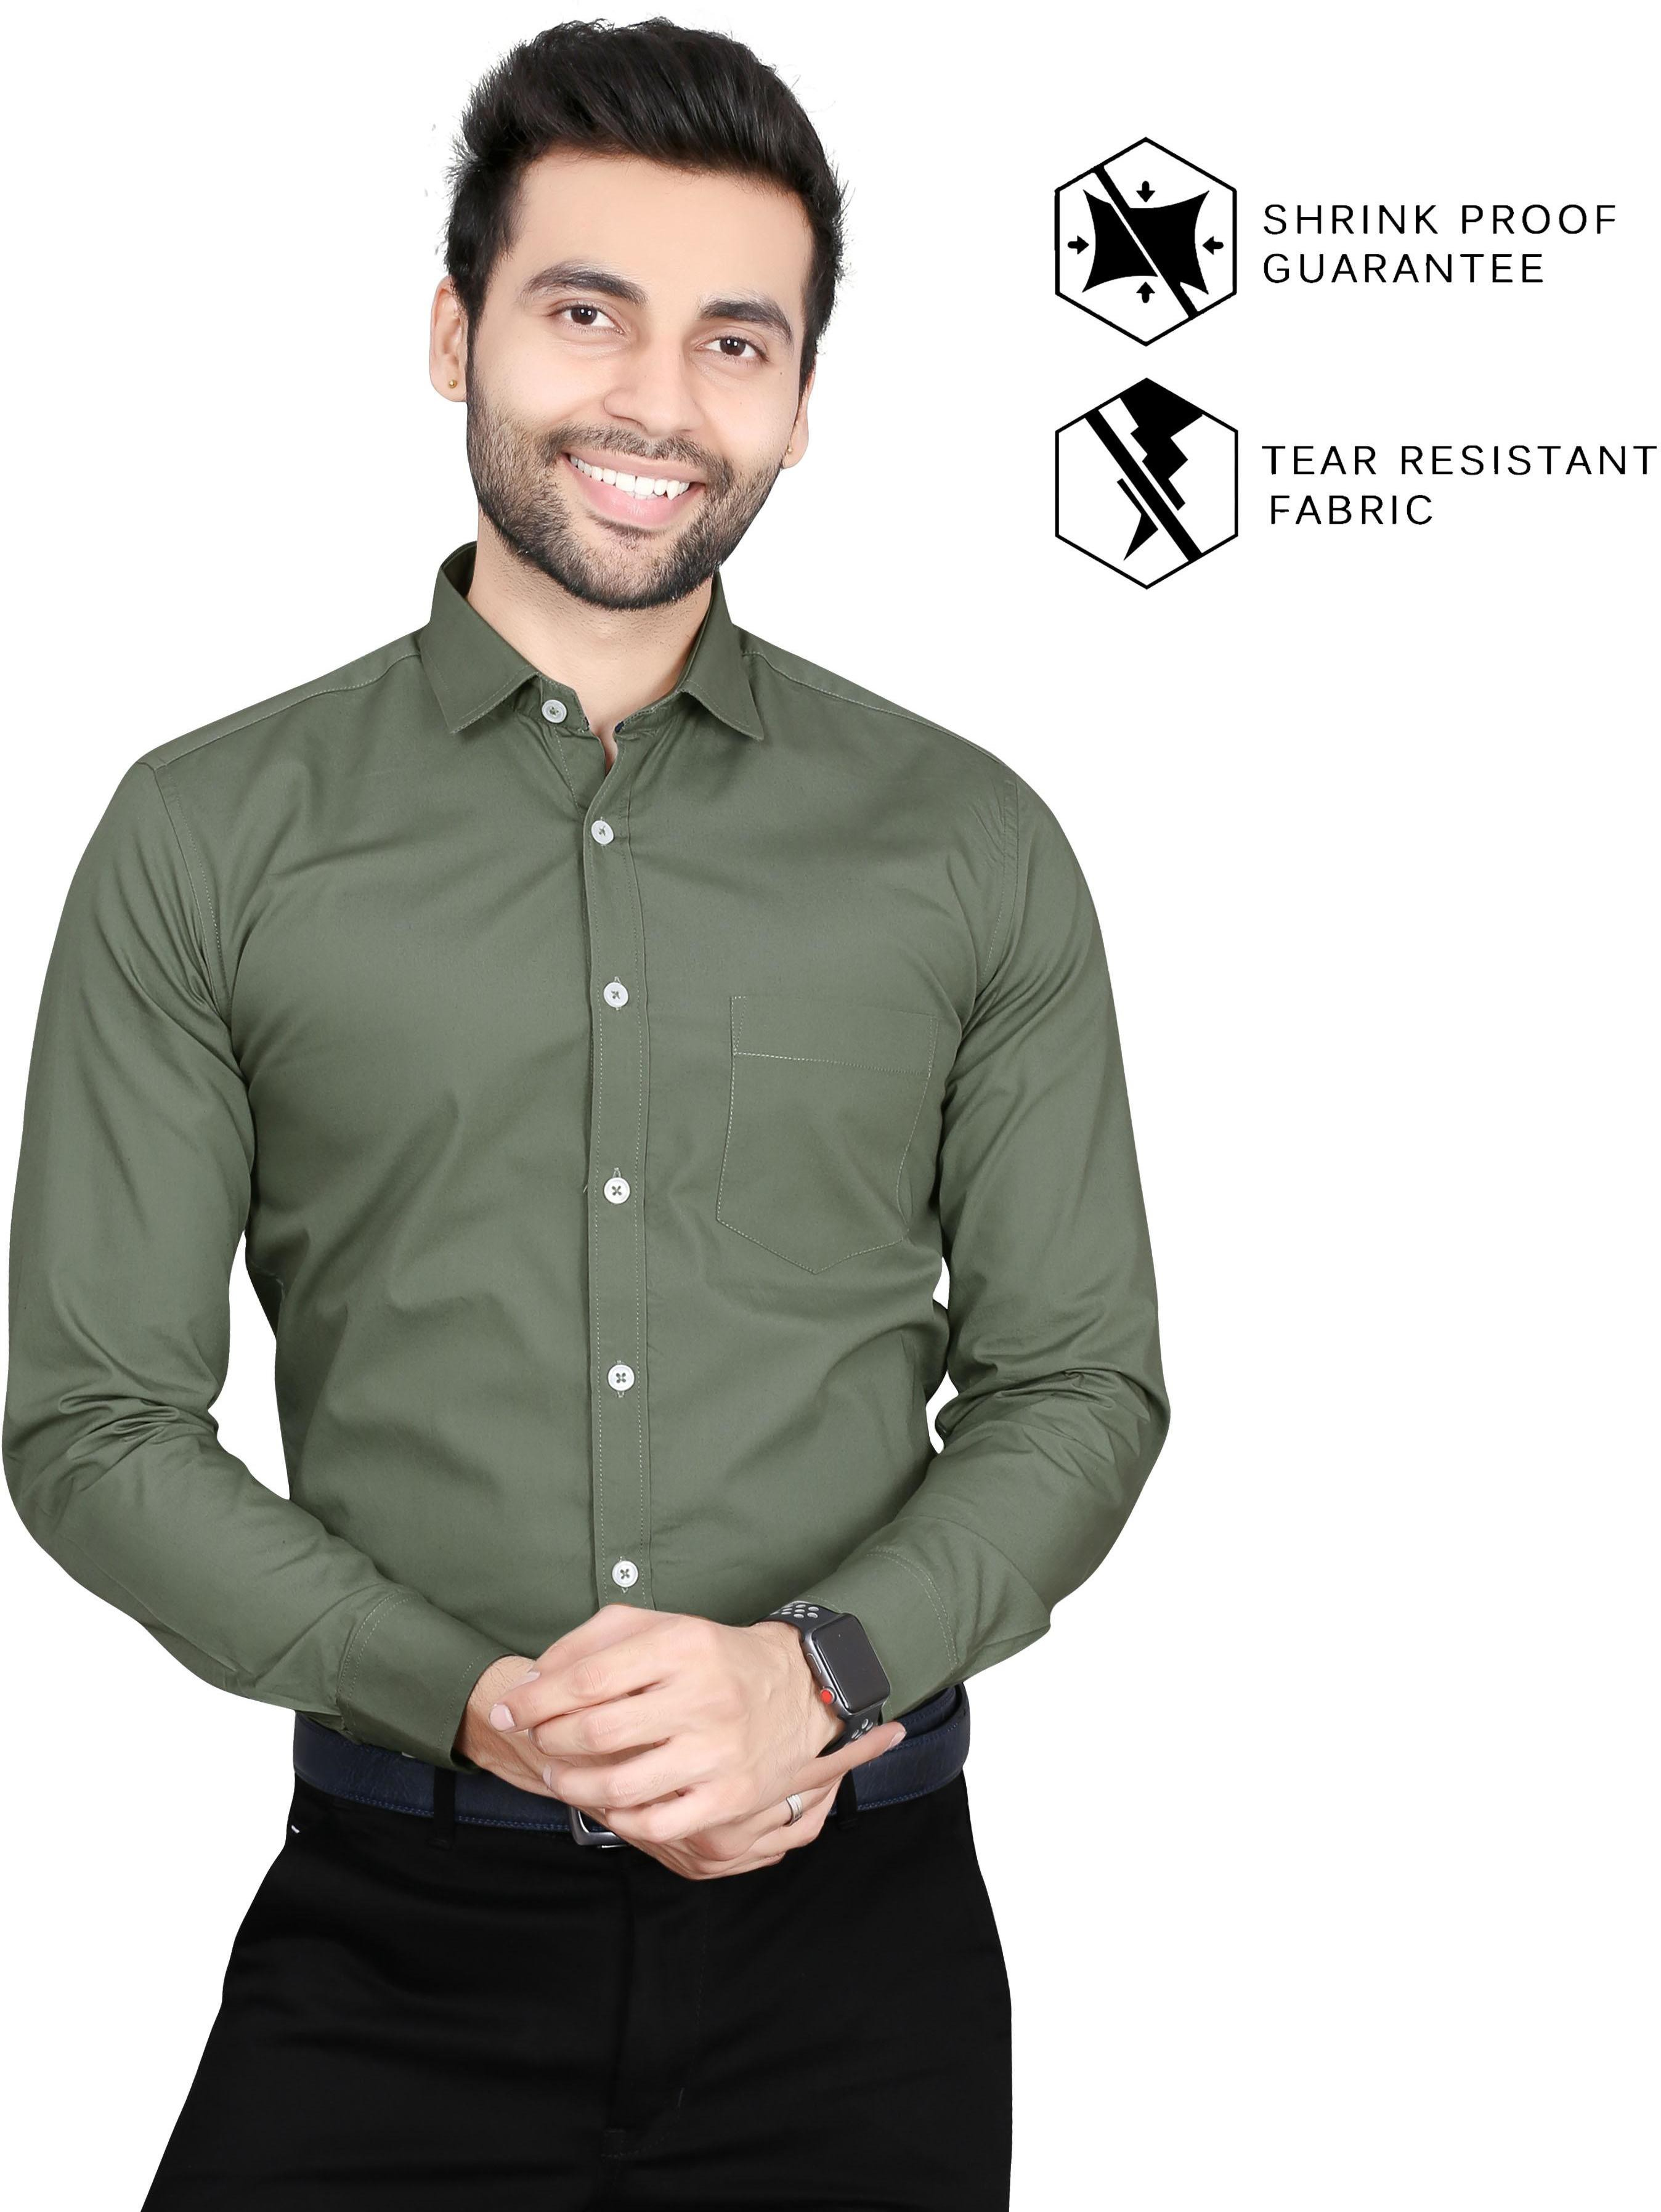 5TH ANFOLD Solid Pure Cotton Formal Full Long Sleev Rusty Green Spread Collar Mens Shirt